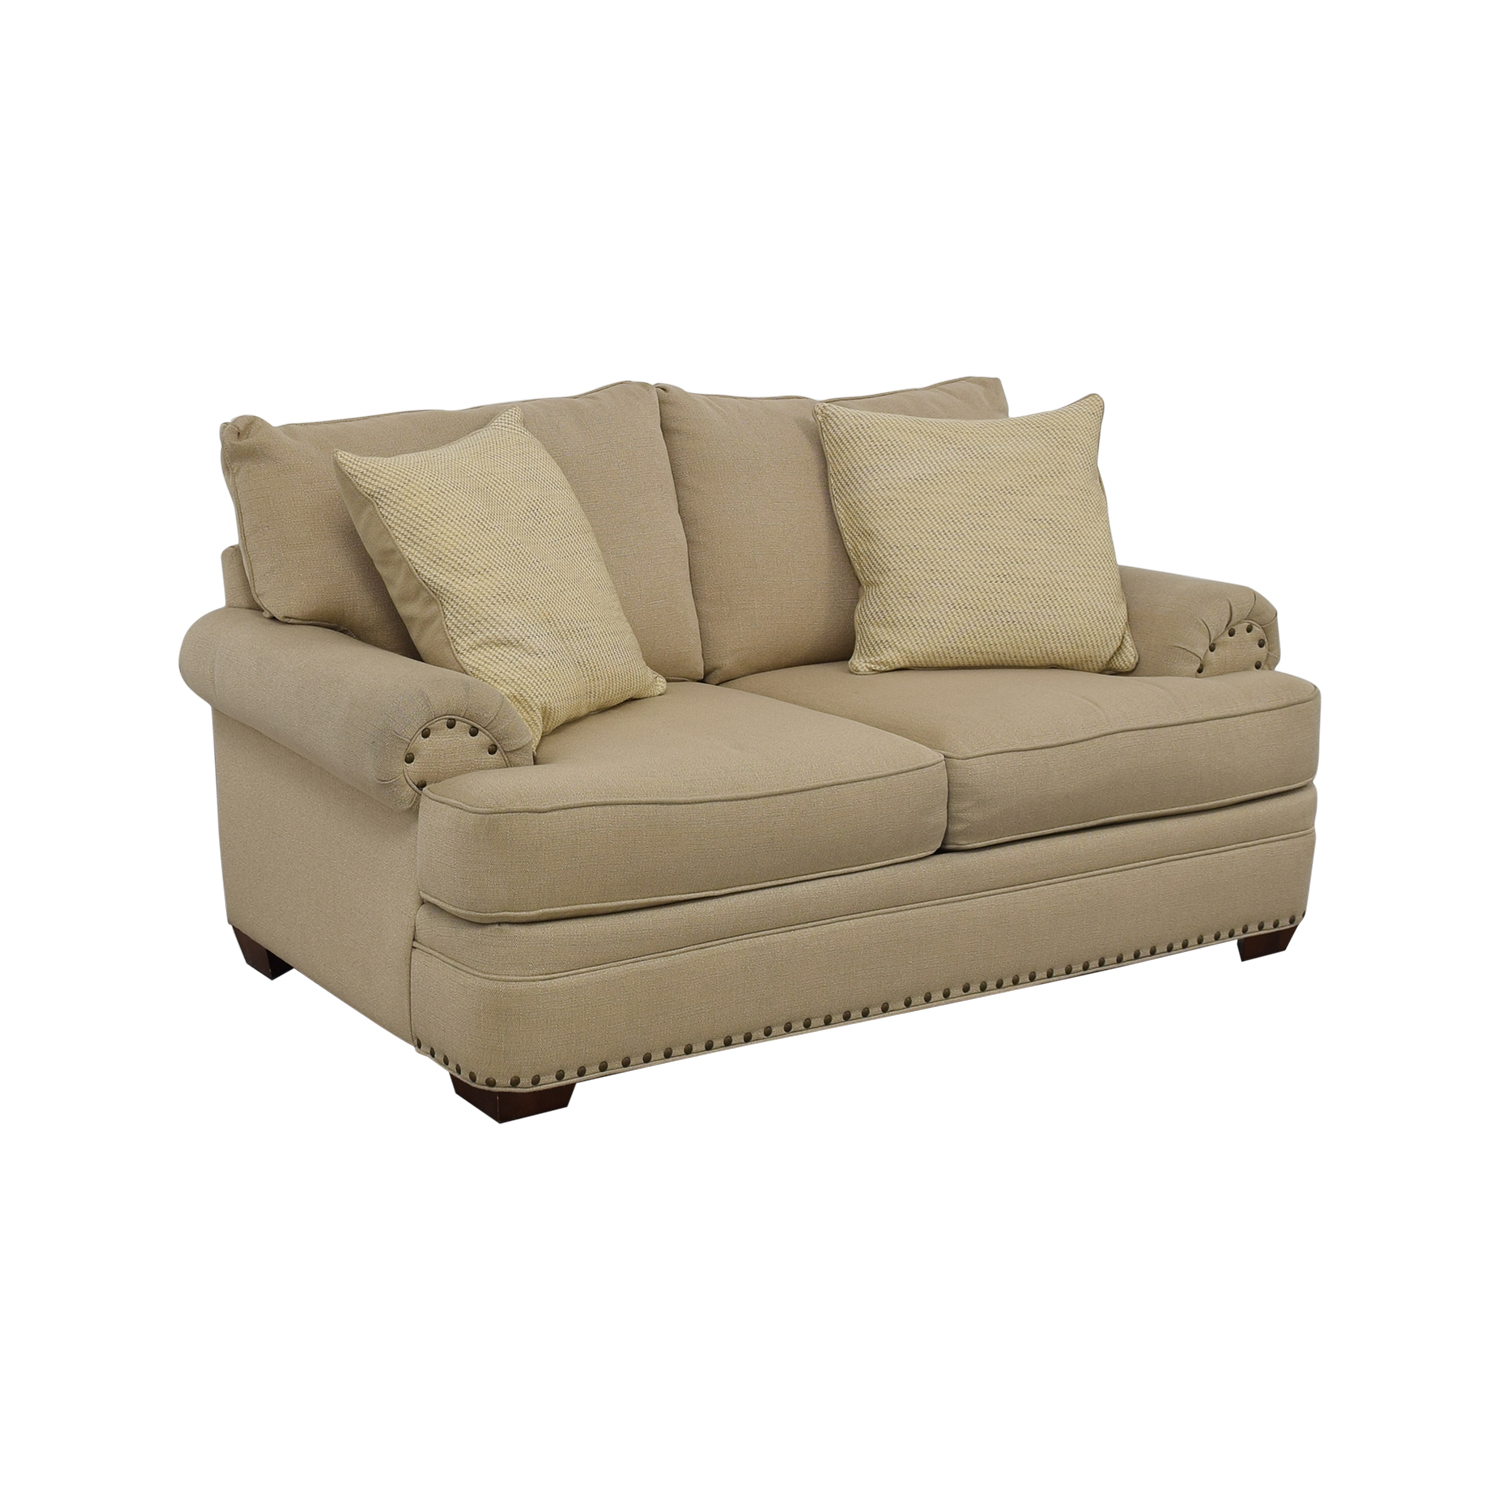 48 OFF  Havertys Havertys Oatmeal Jillian Loveseat  Sofas